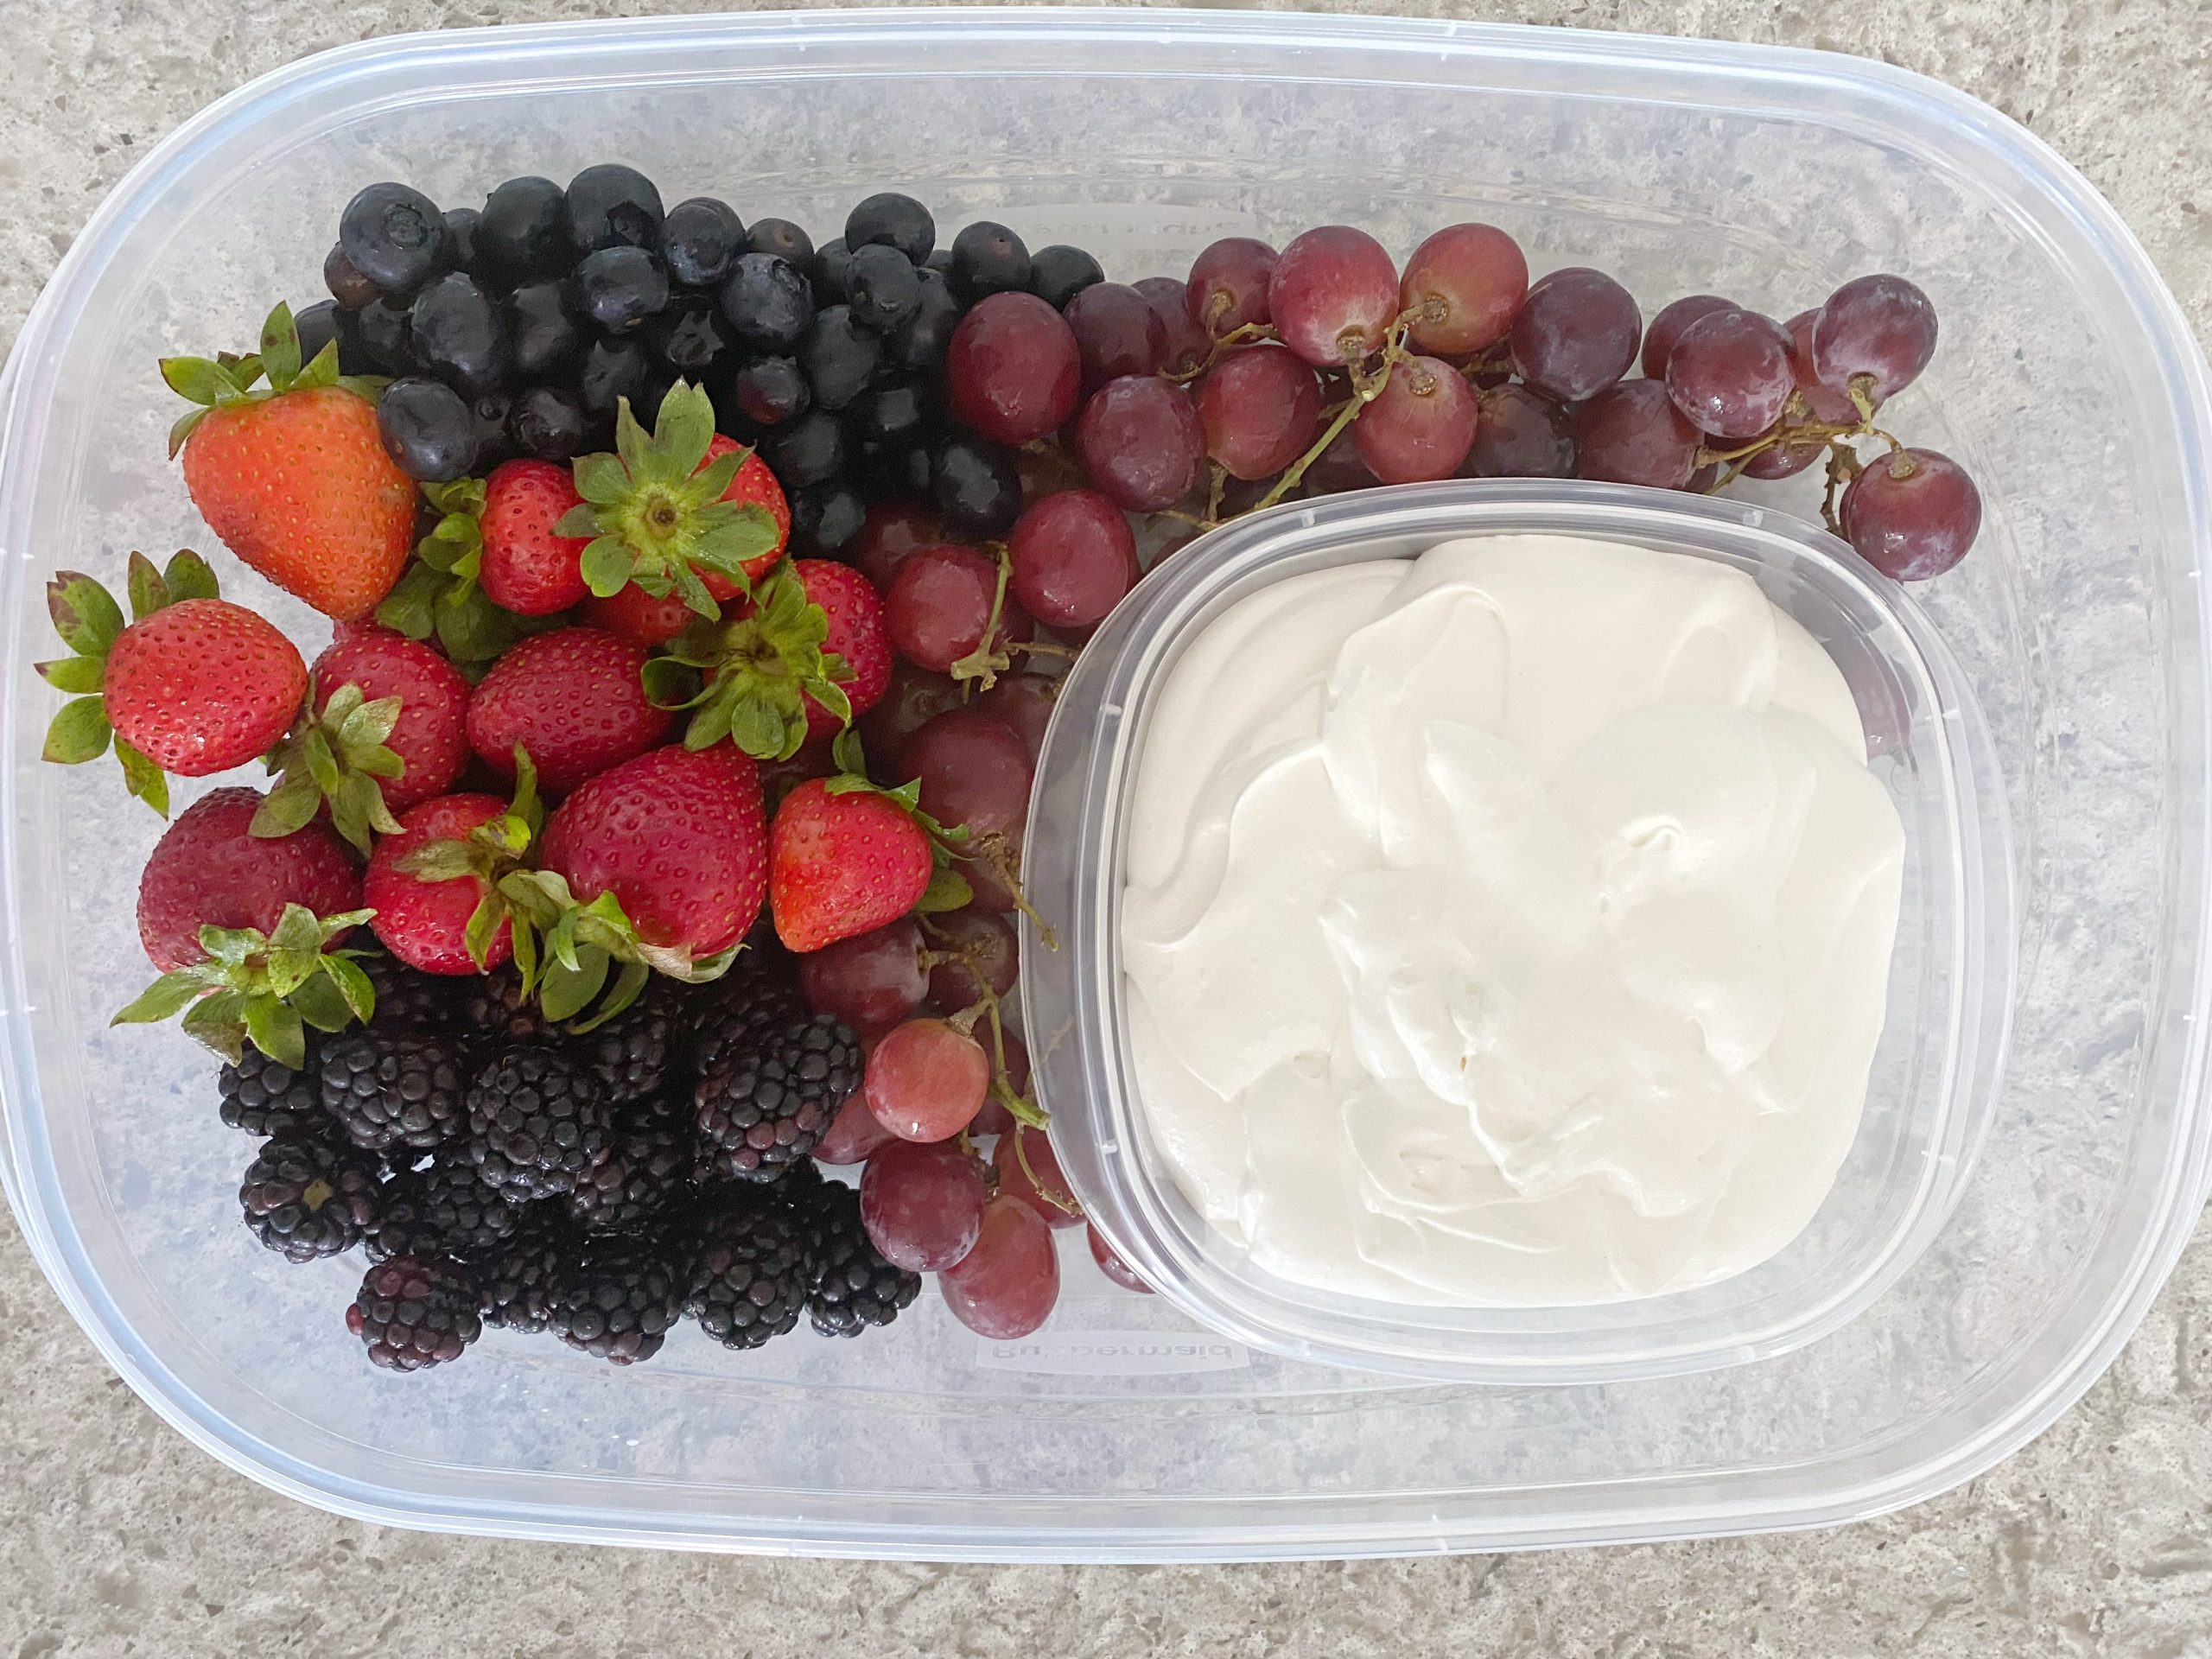 Fruit dip and fruit in container